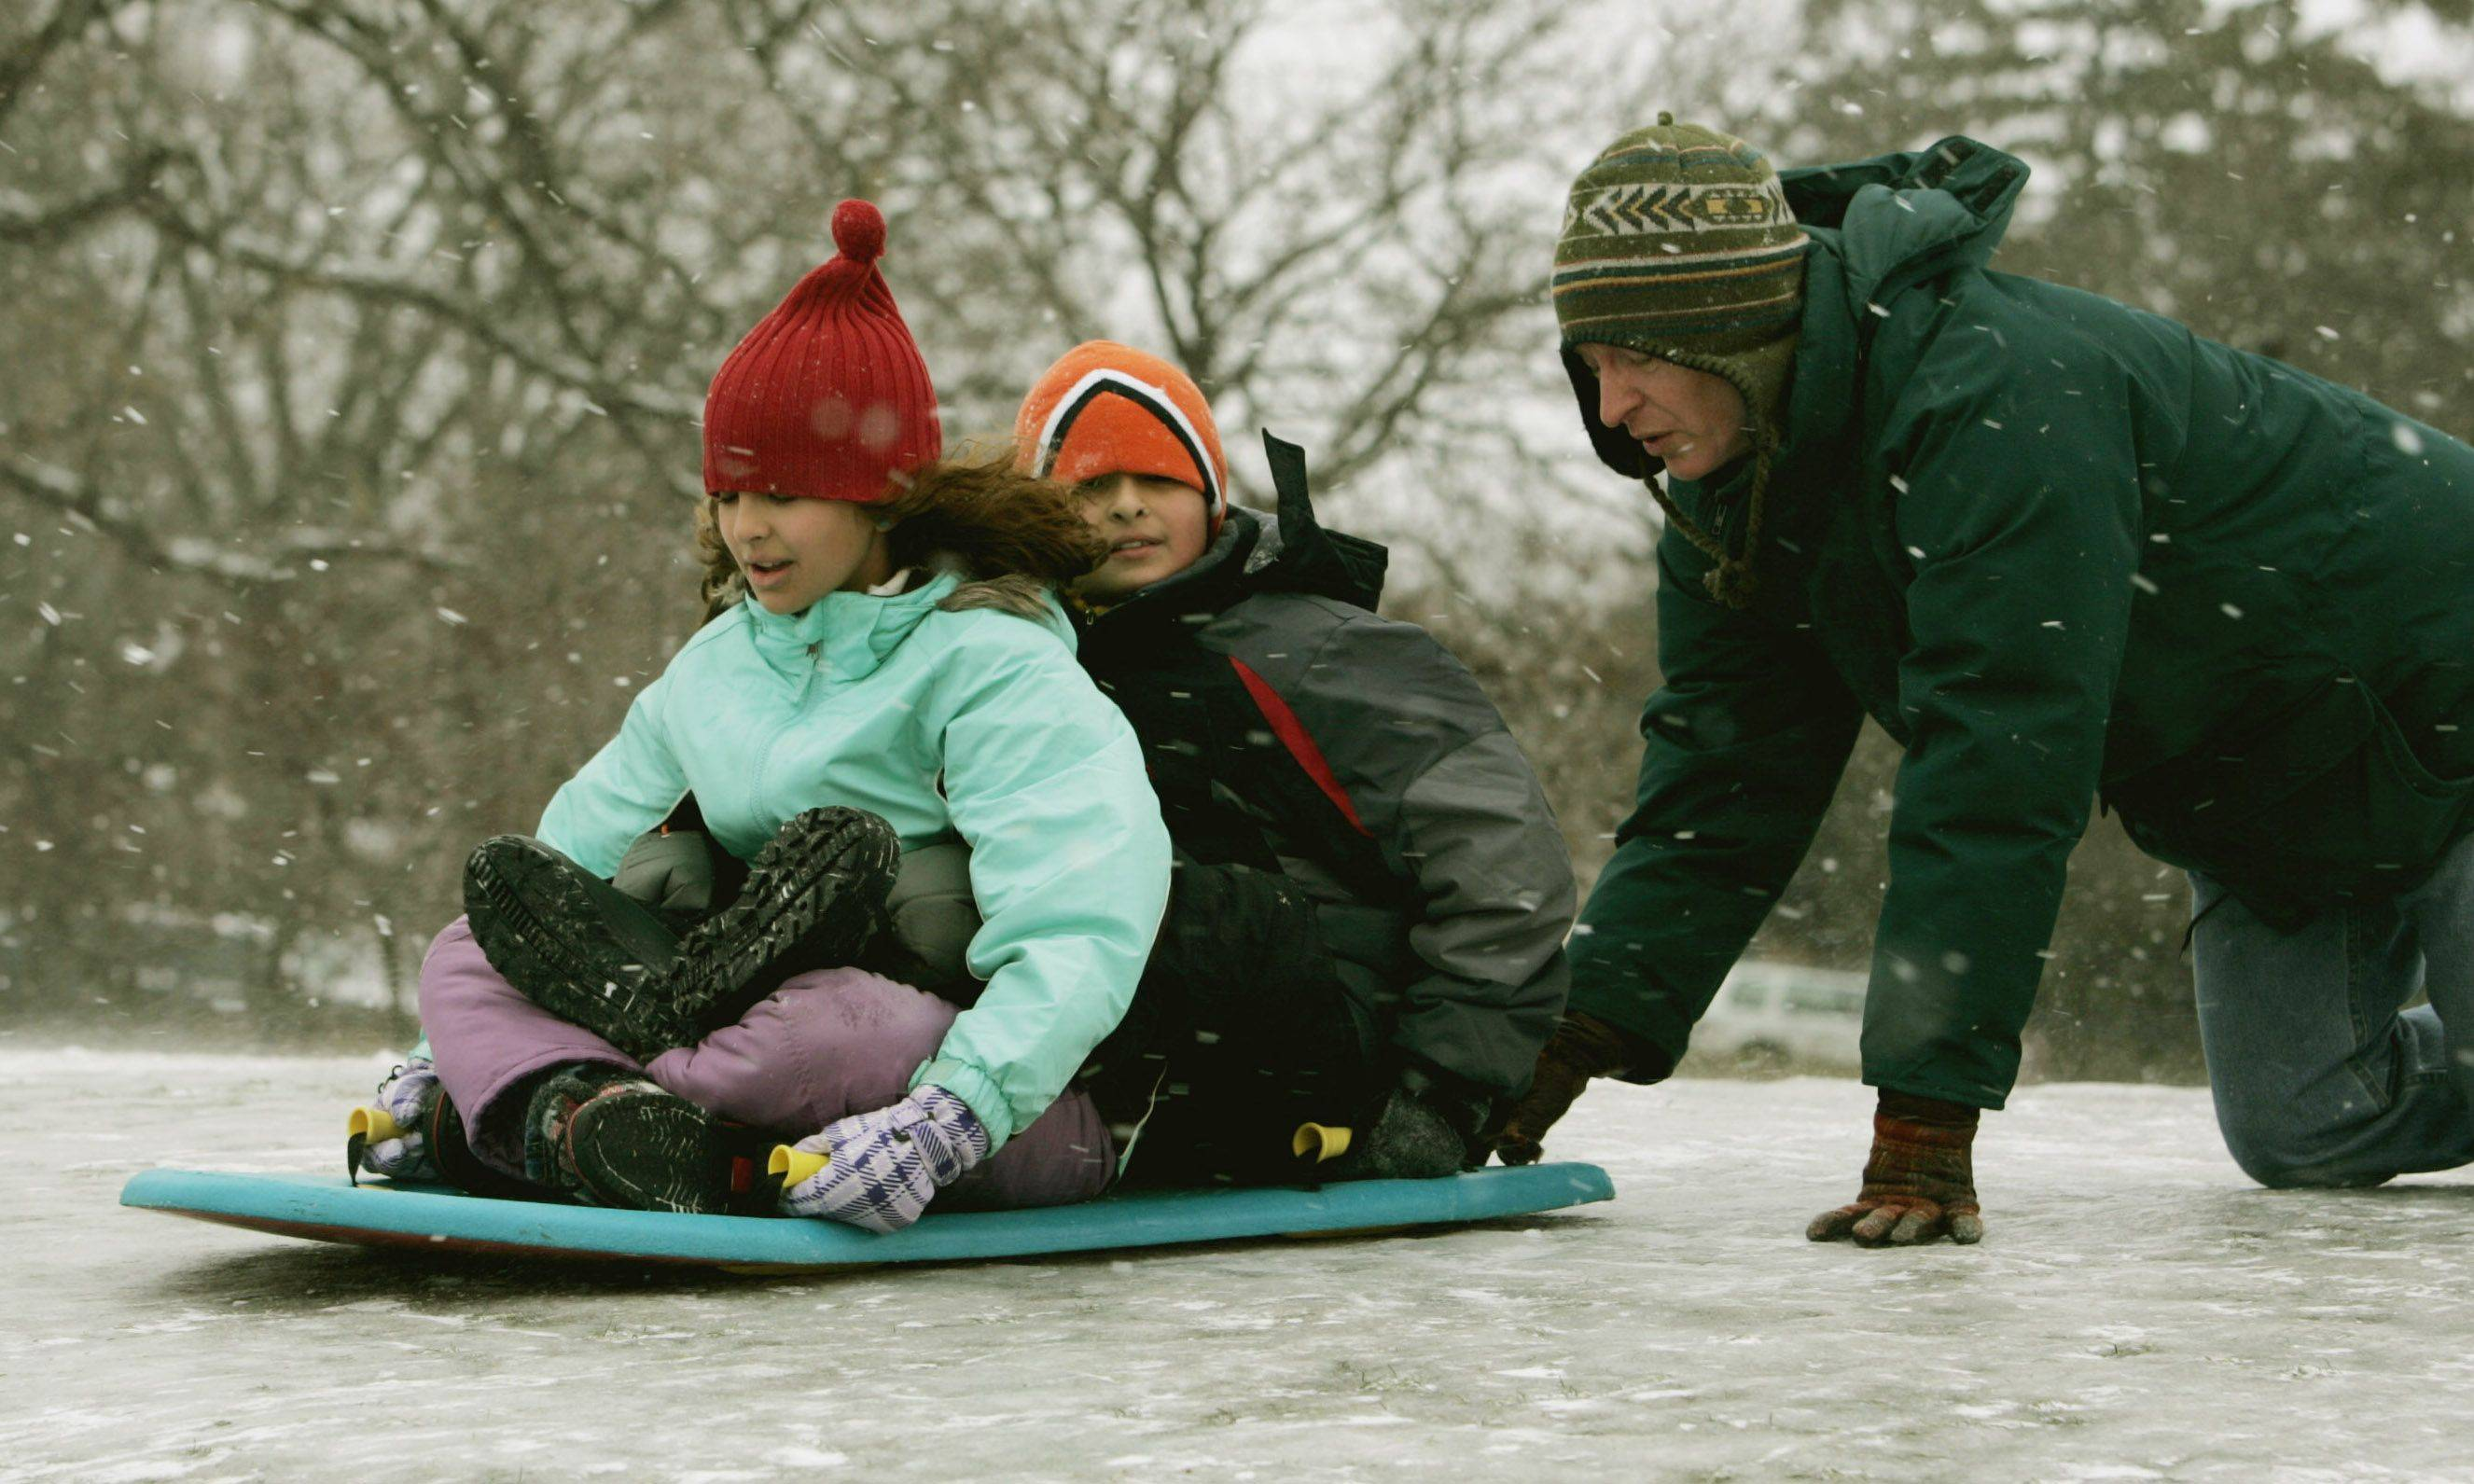 Jerry Novick, of Naperville gives his children Kara, 11, and Matt, 9, a push as they sled down a hill Sunday at Rotary Hill in Naperville.